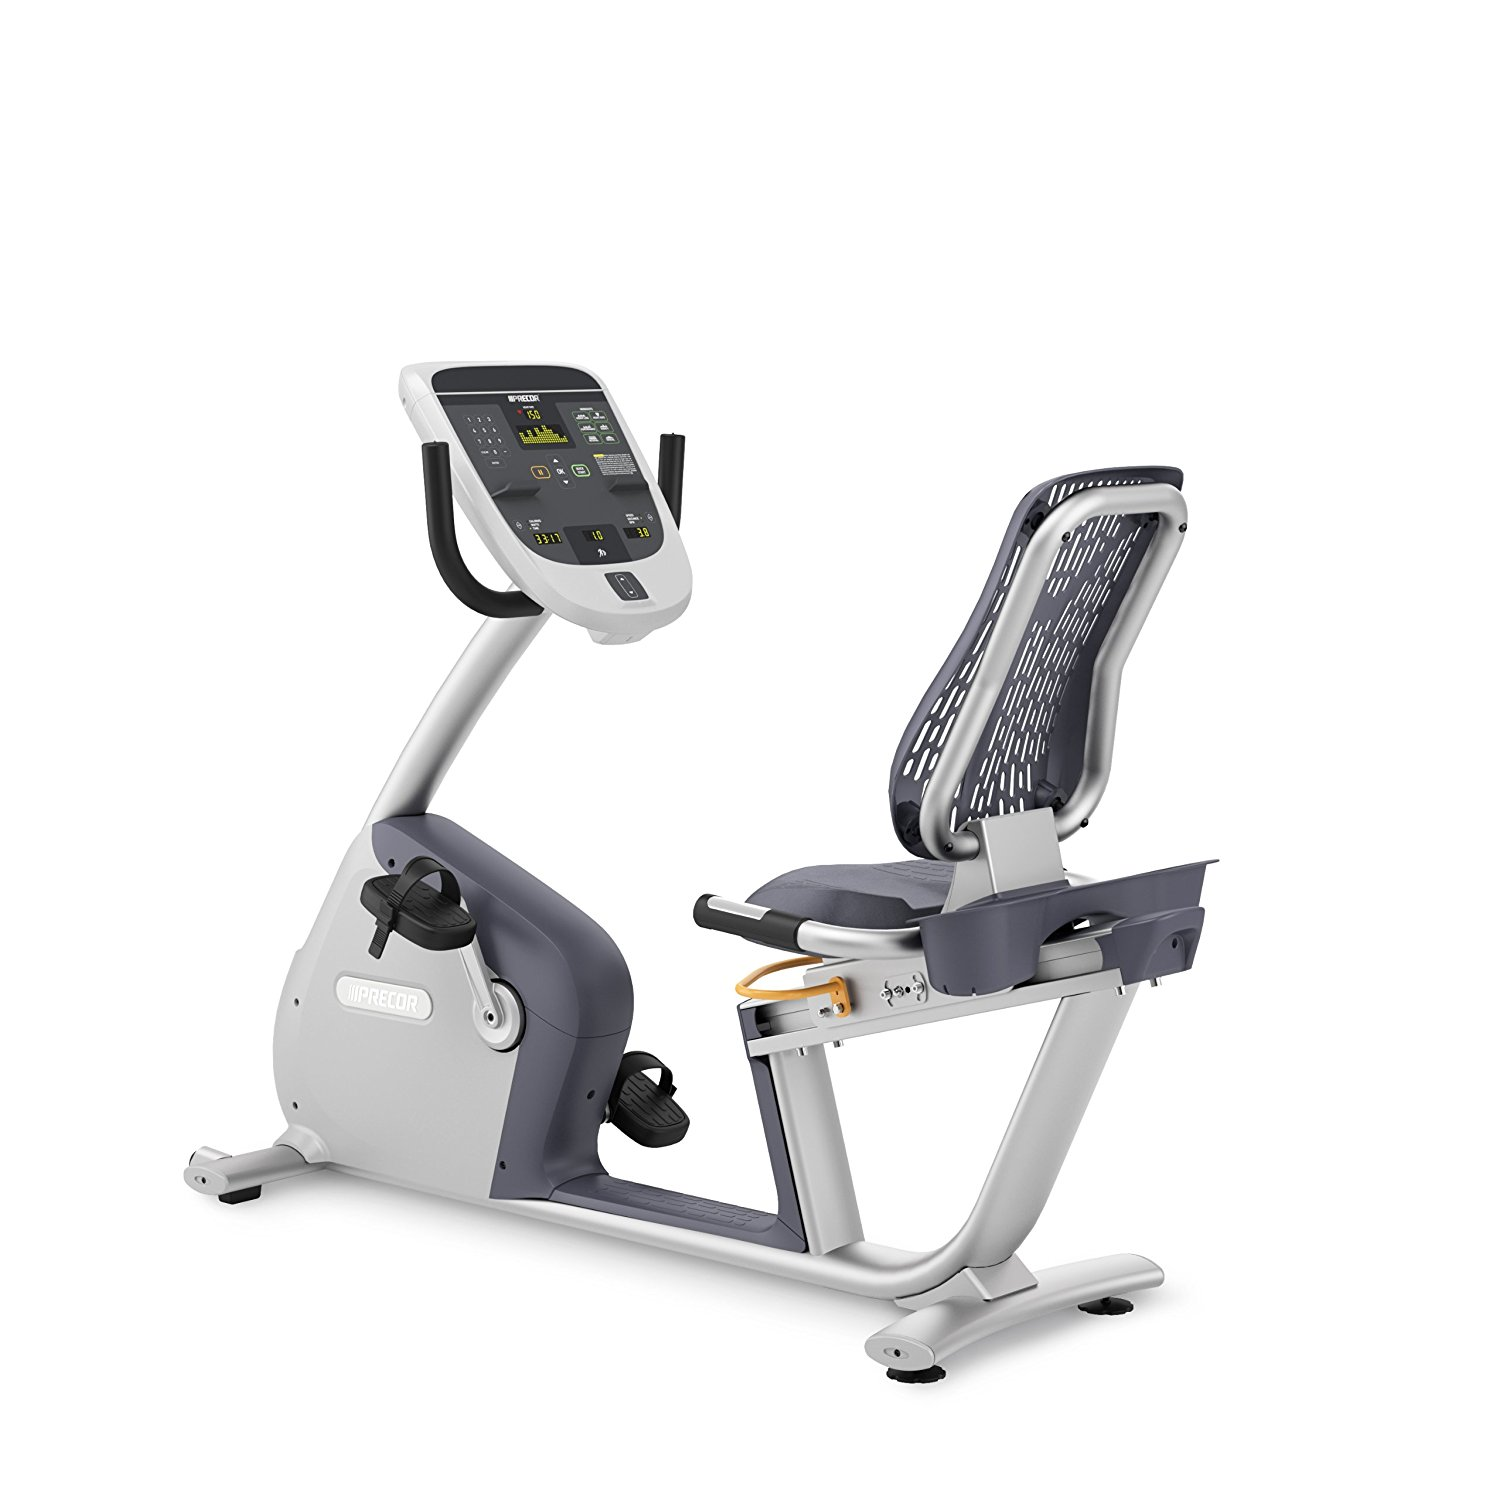 Precor RBK 815 Commercial Recumbent